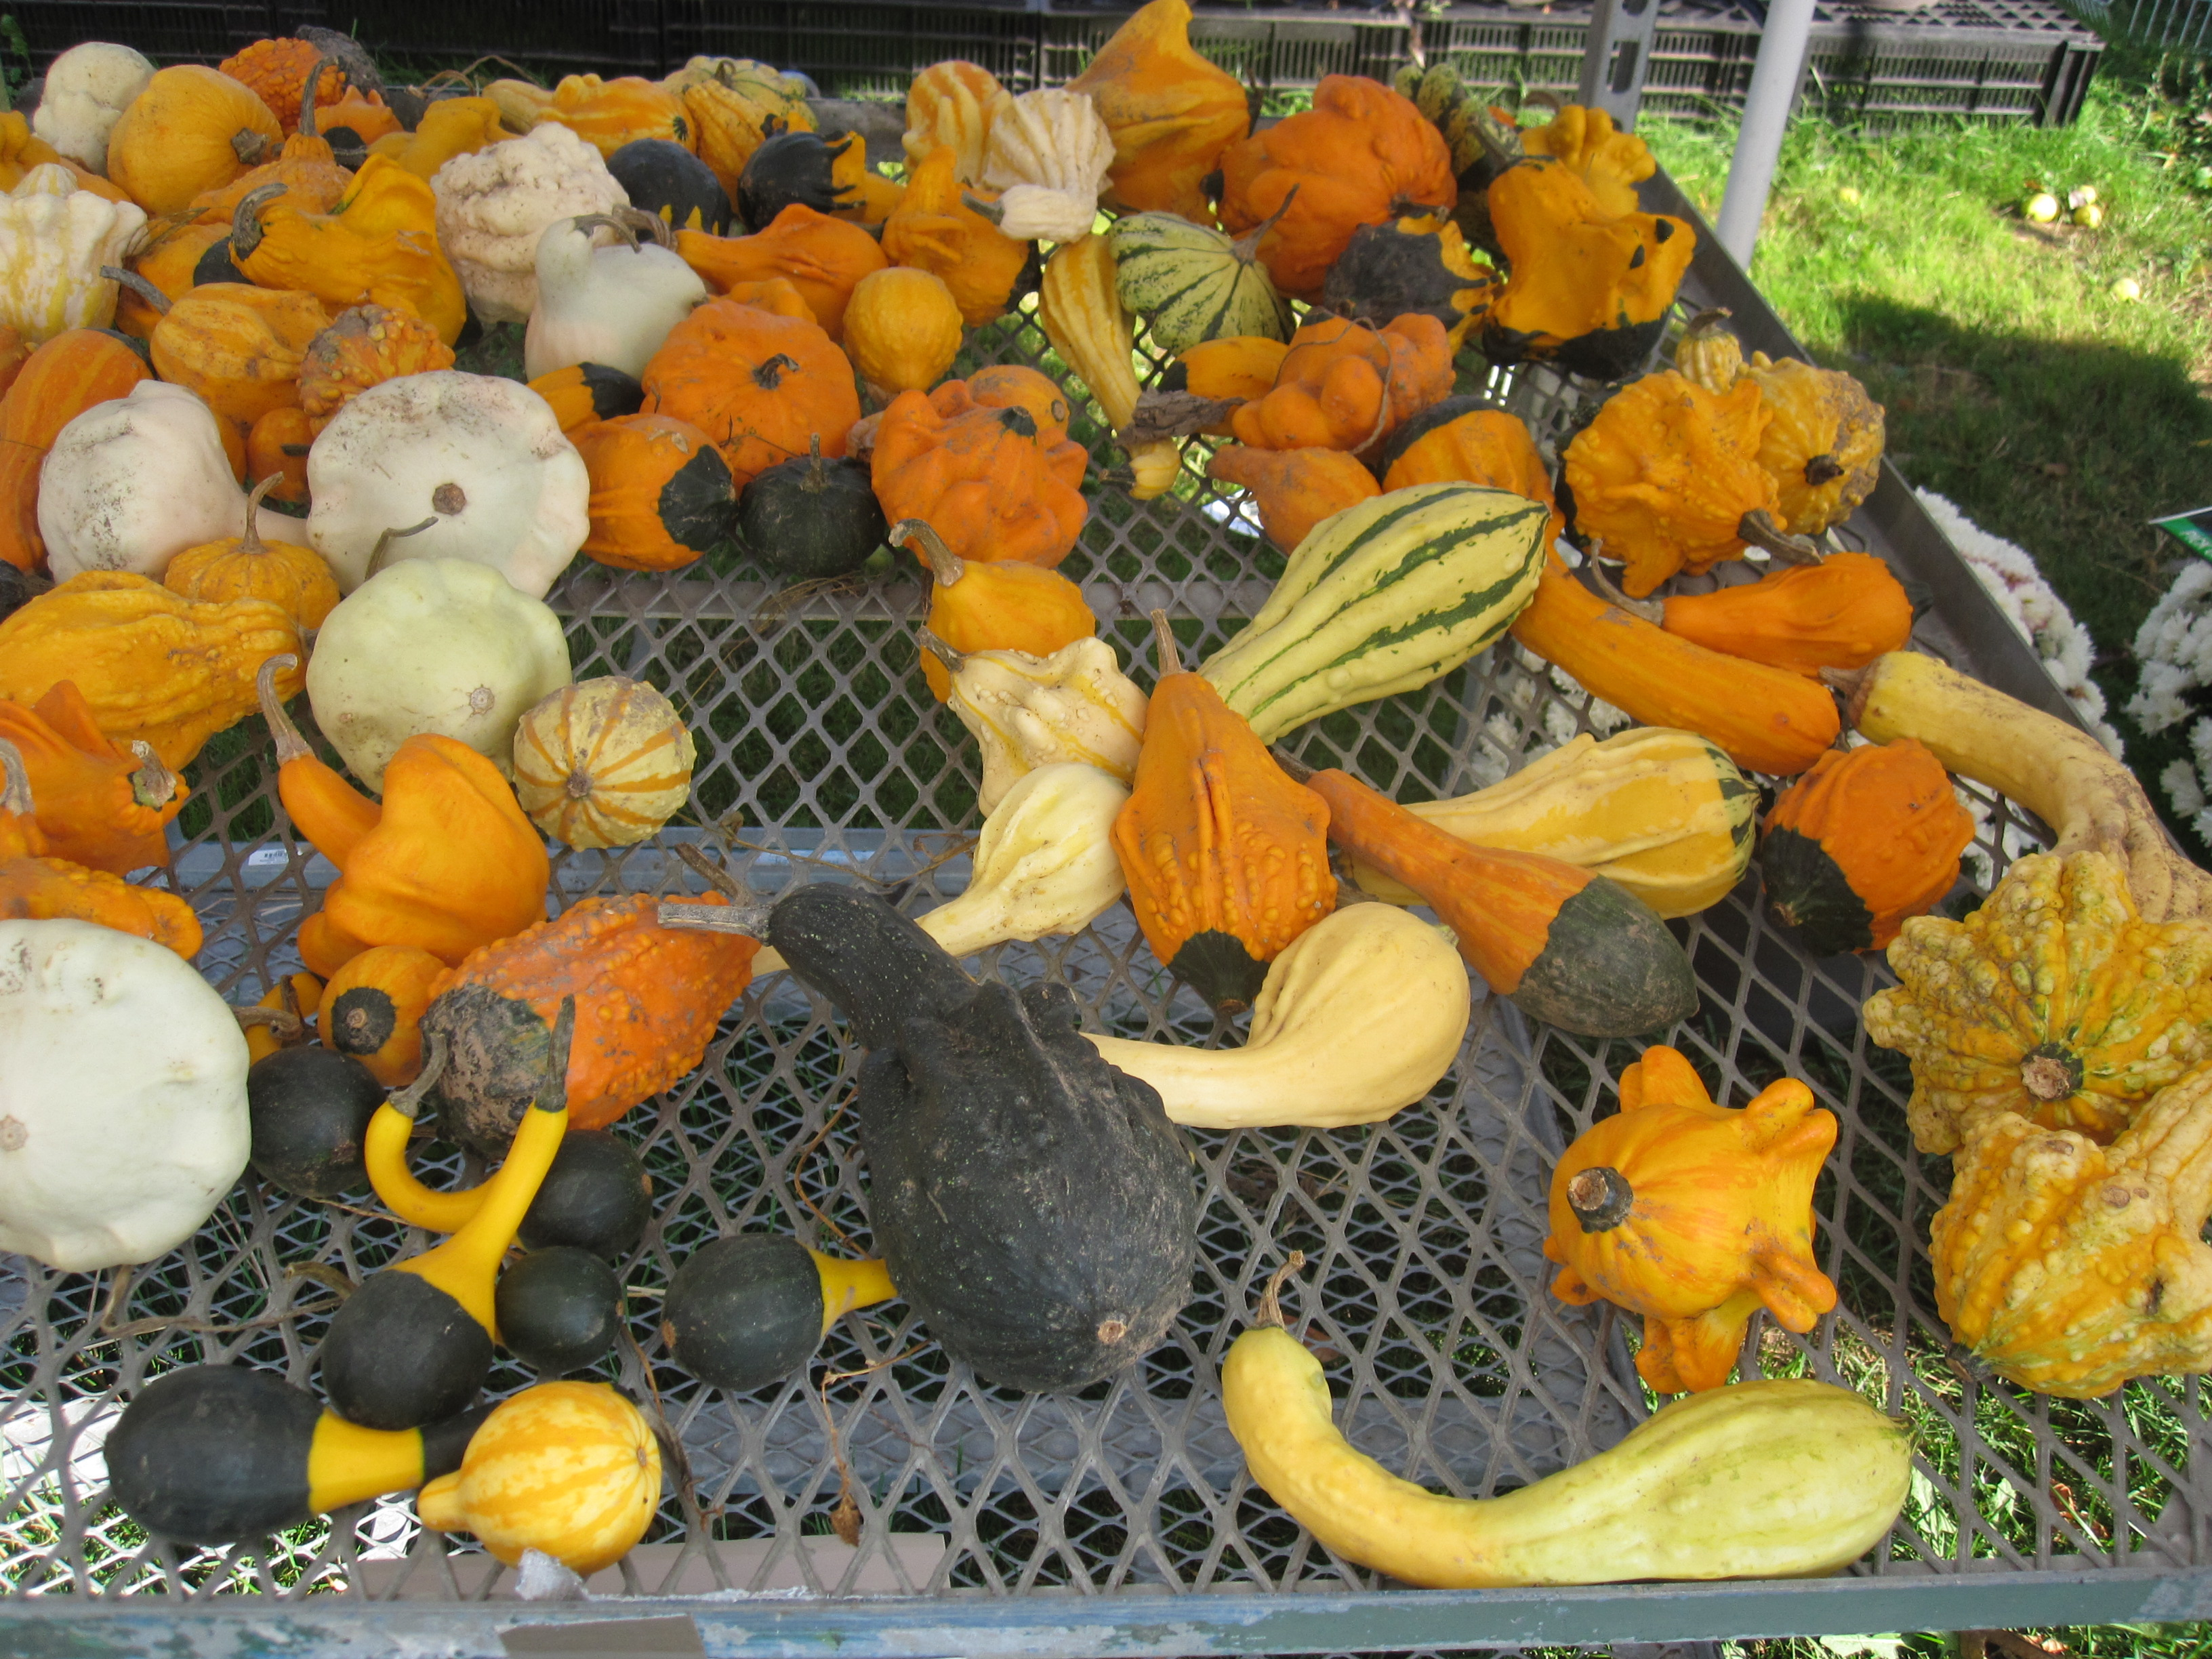 Oh my squash! – Welcome to the Urban Veggie Lab